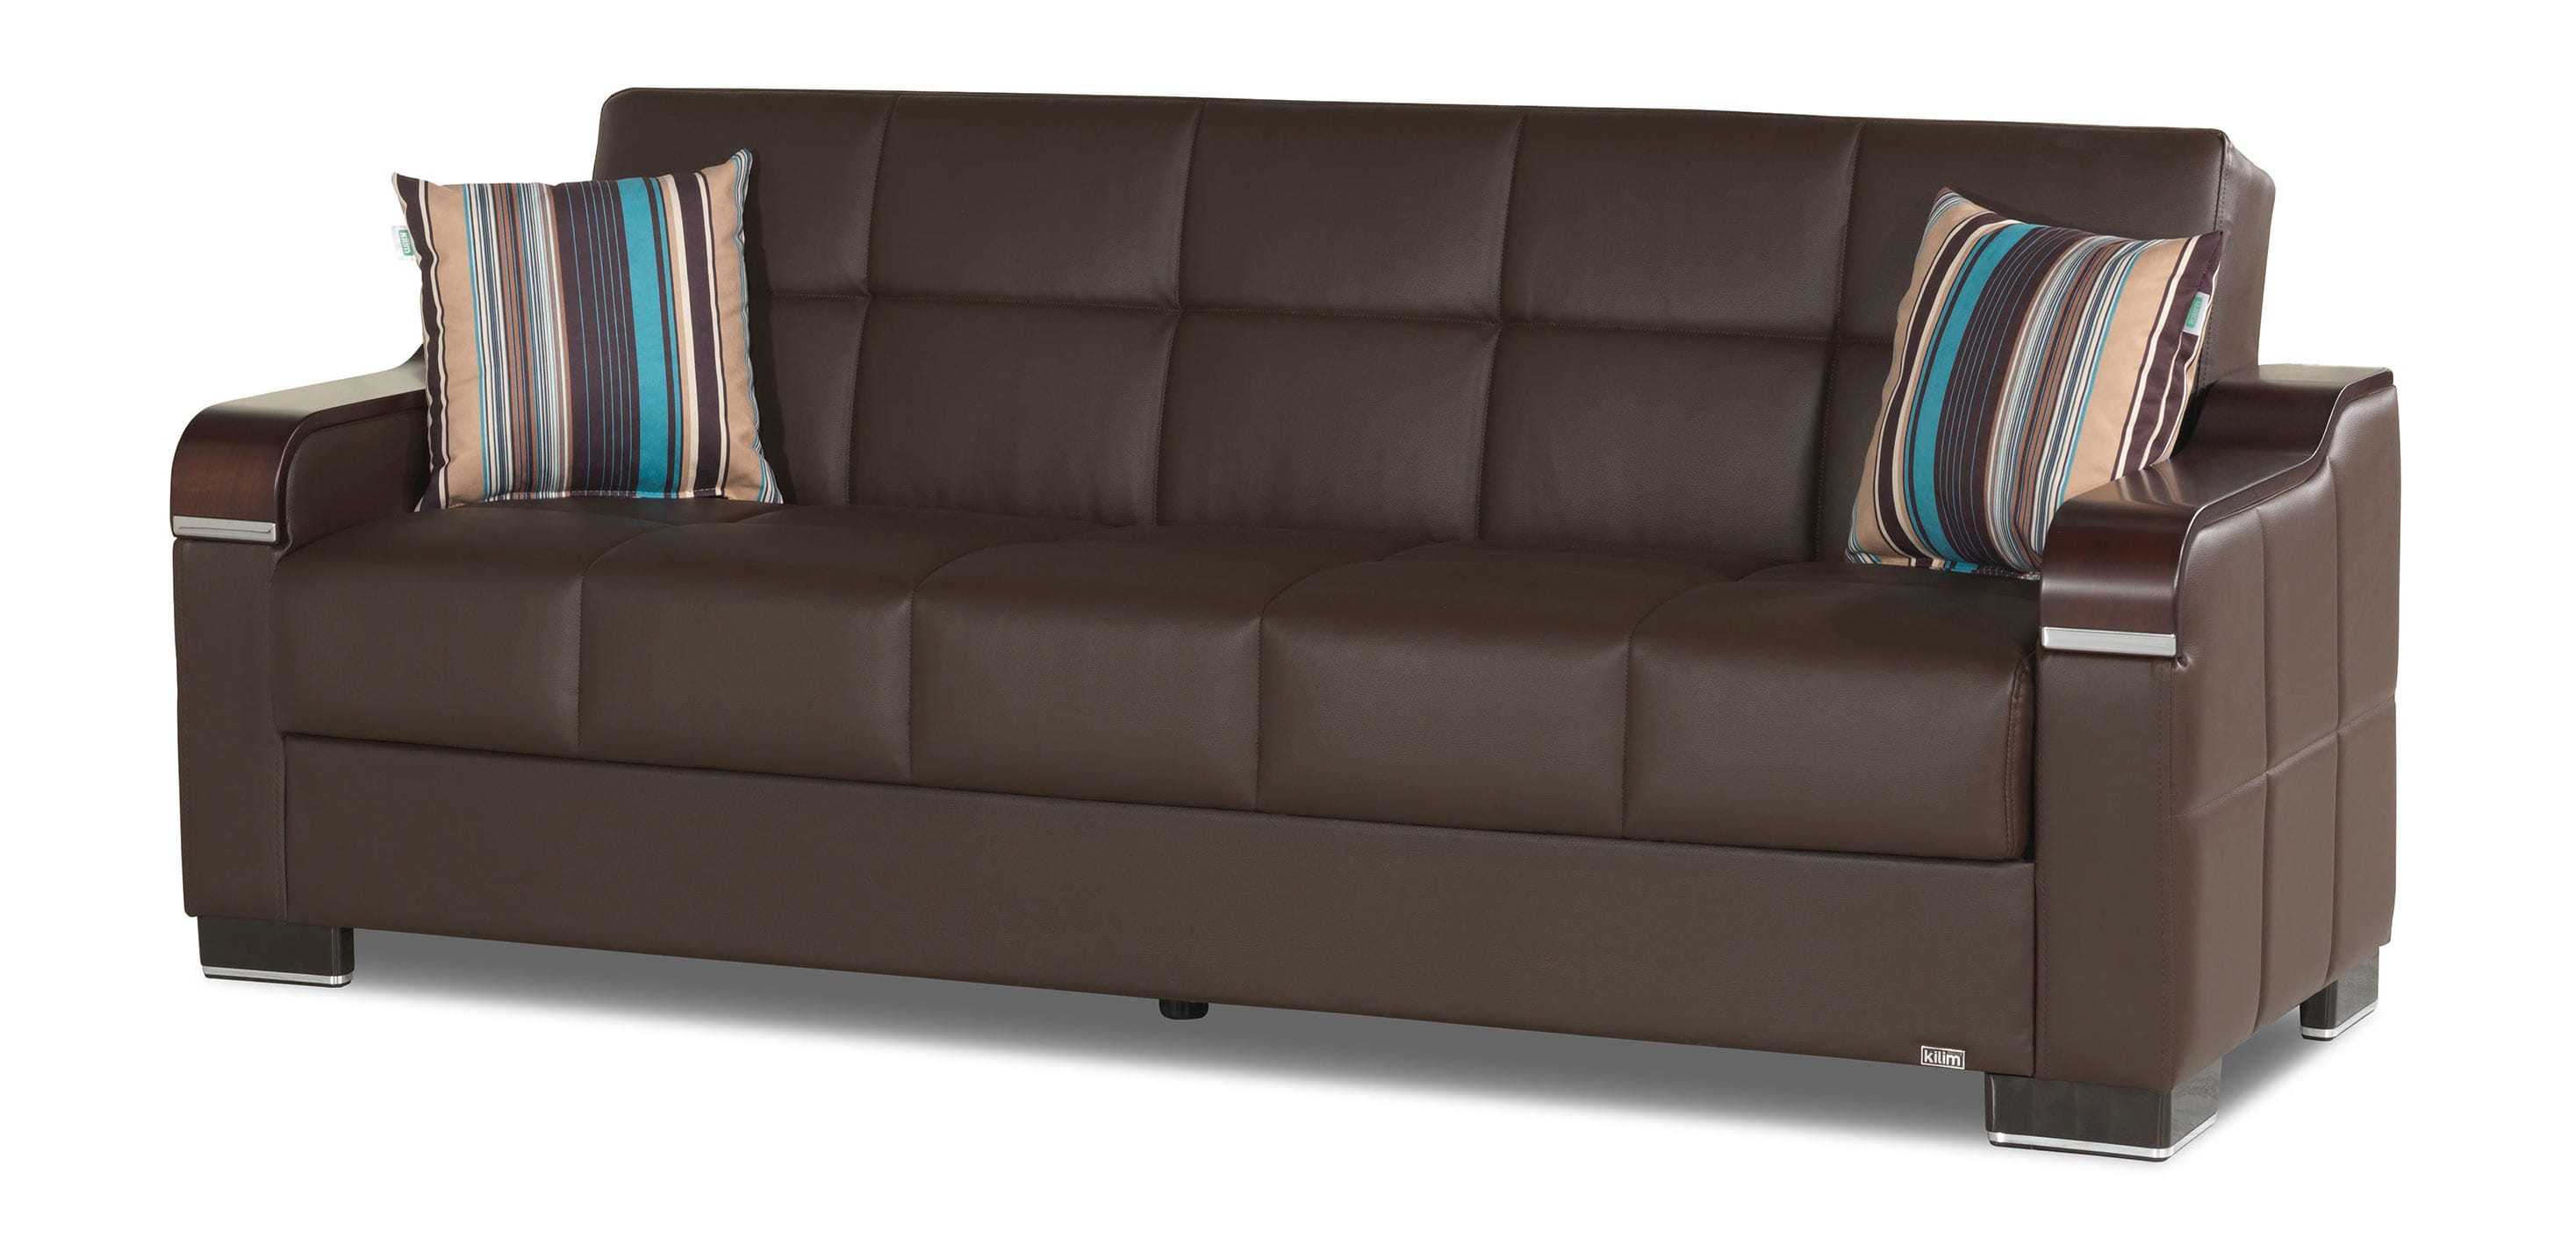 Uptown Brown PU Leather Convertible Sofa by Casamode